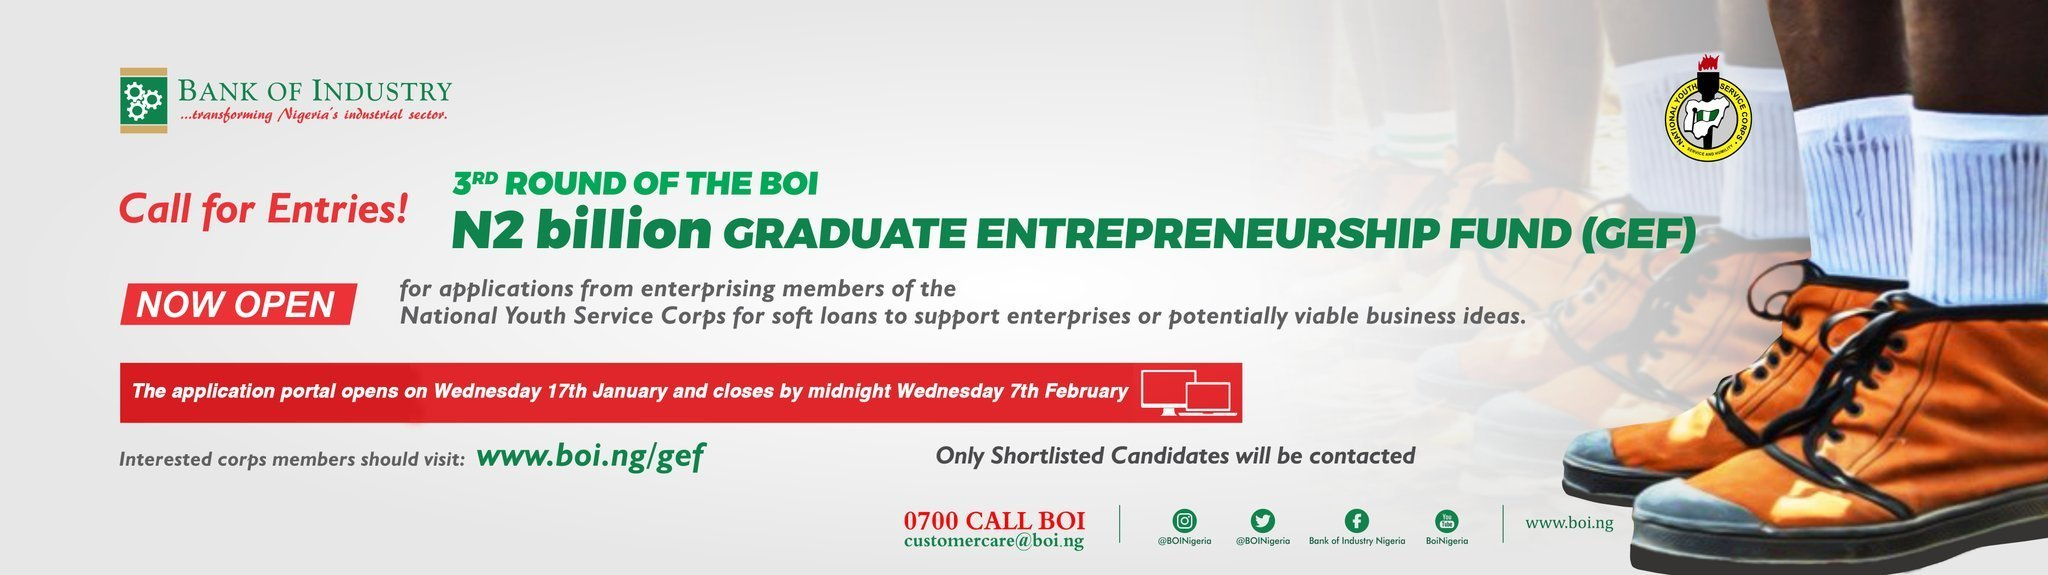 Bank Of Industry (BOI) 2 Billion Naira Graduate Entrepreneurship Fund For NYSC Members - 2018